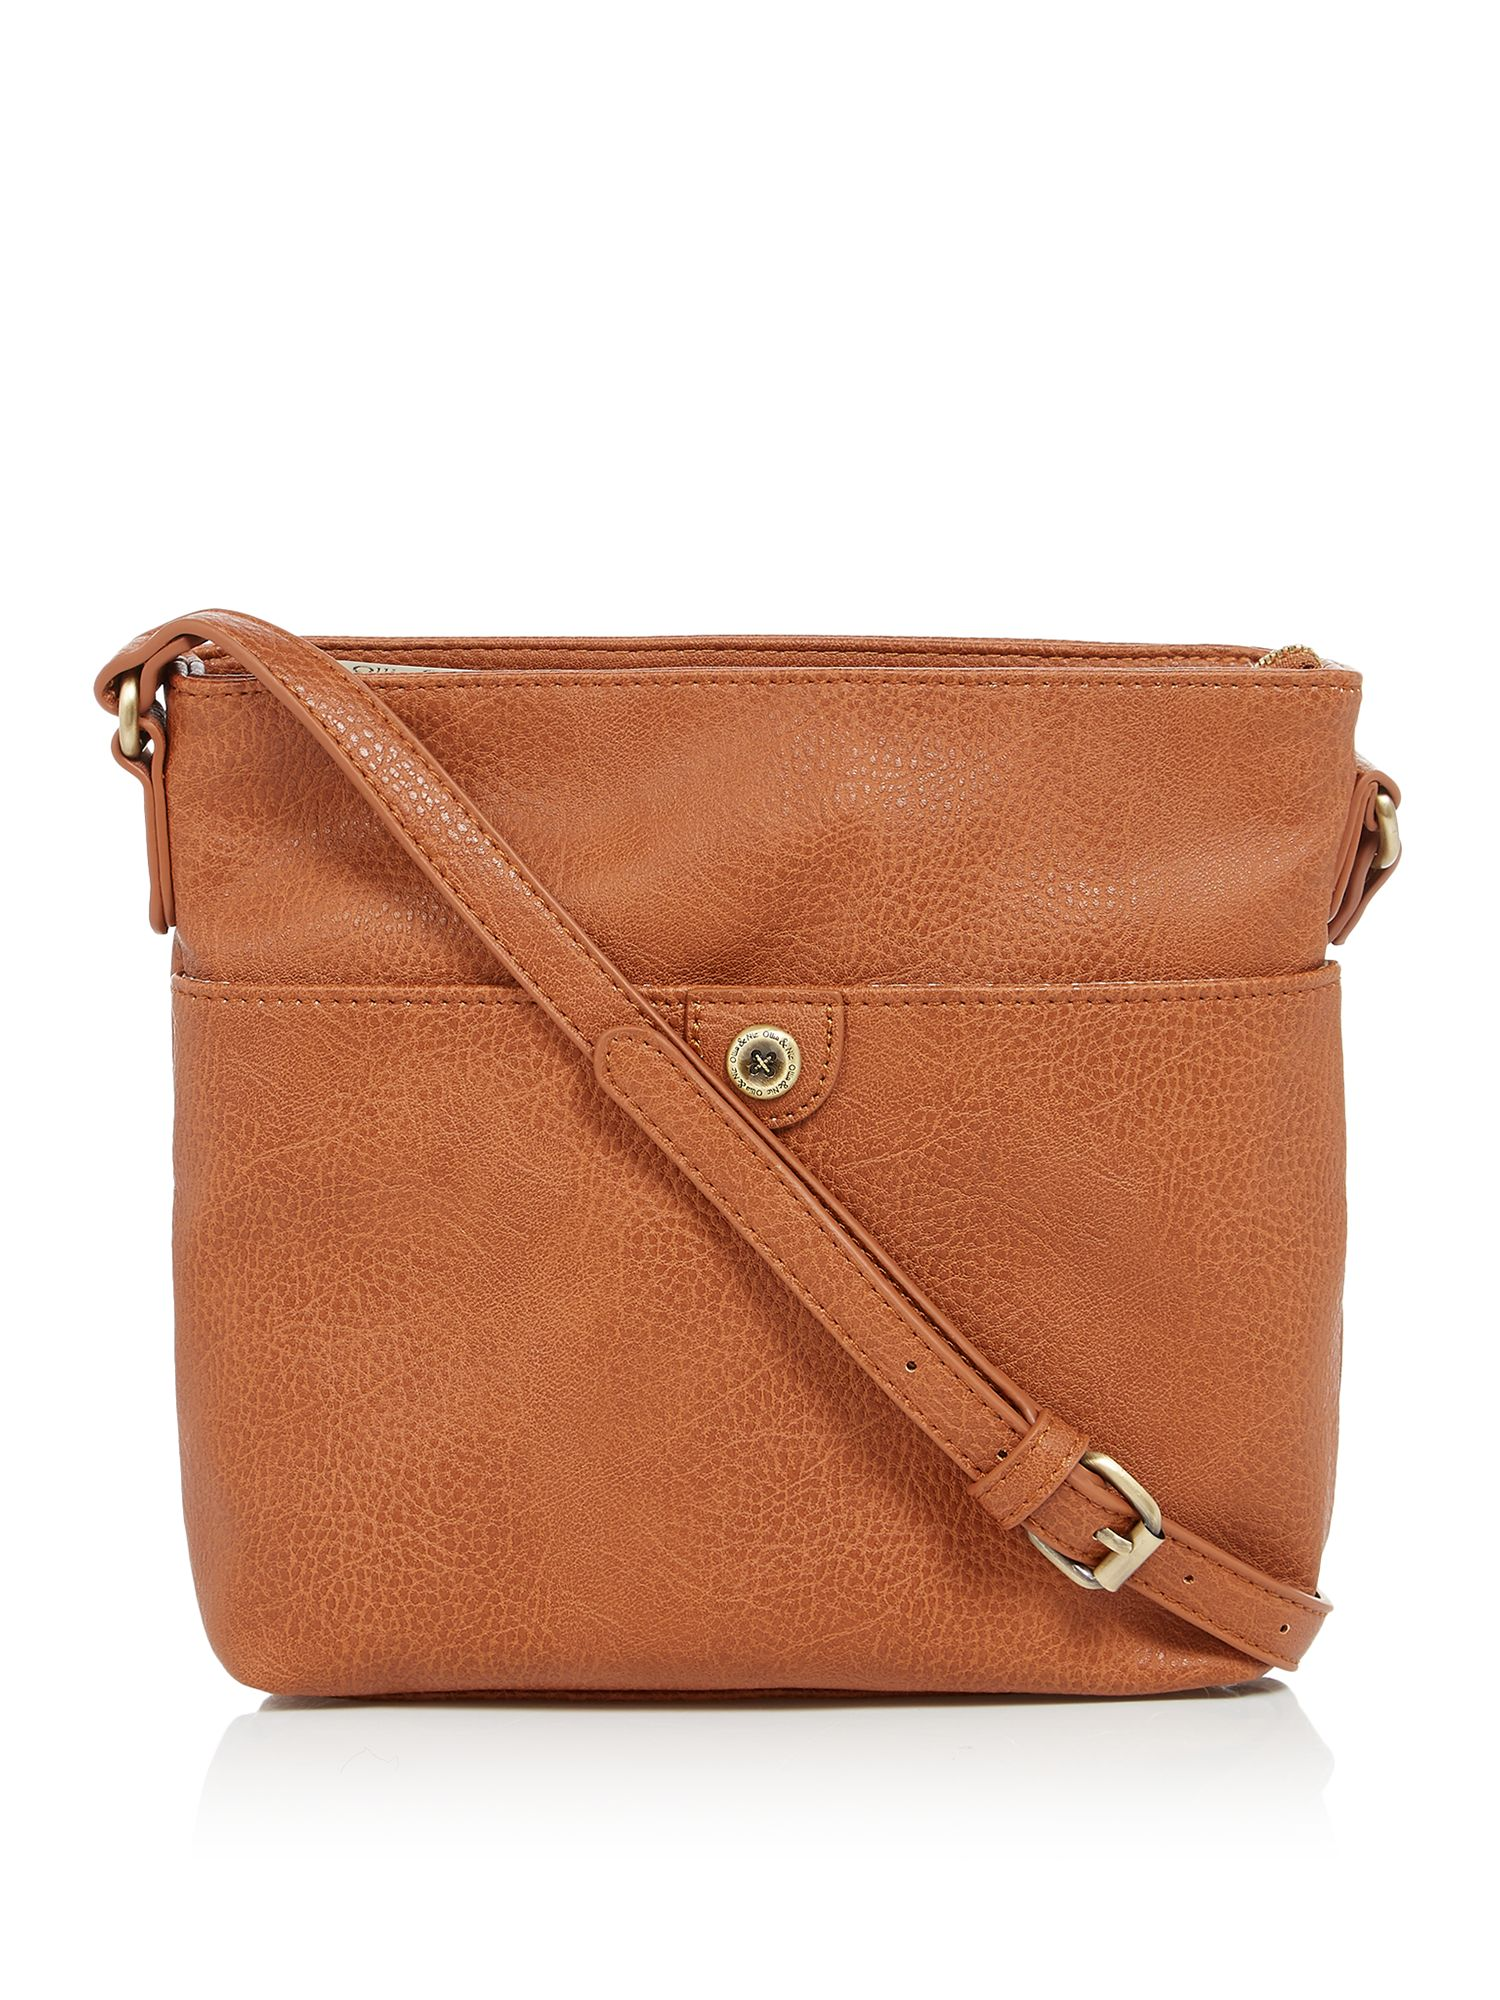 Ollie & Nic Nora Crossbody, Tan